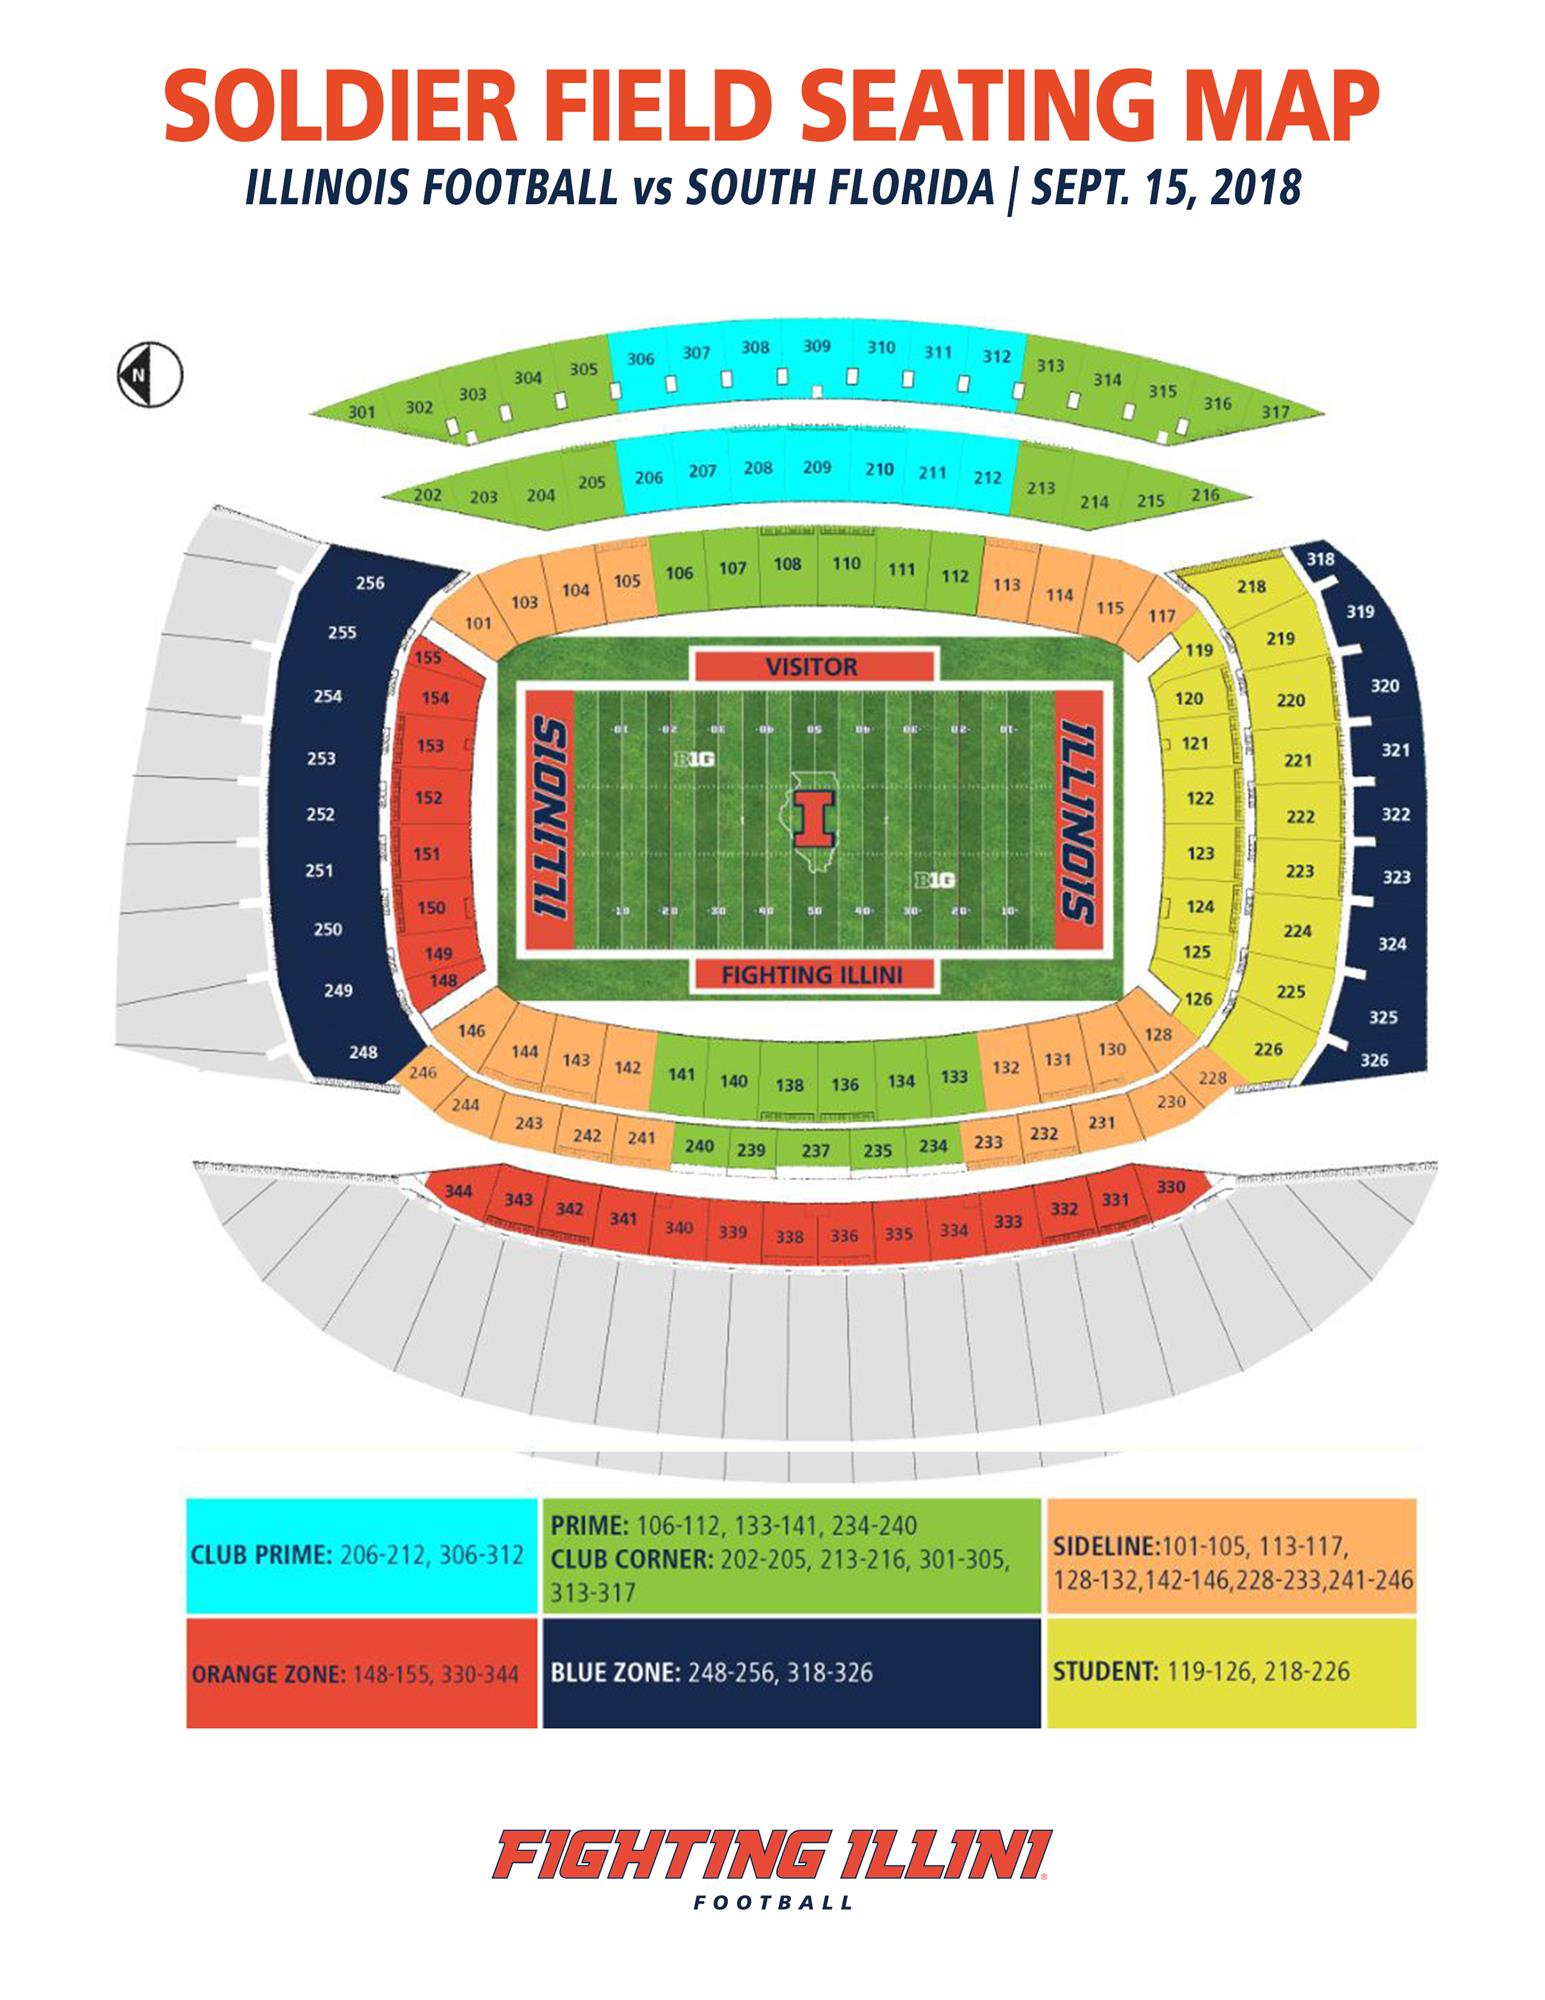 Illinois Football Soldier Field Seating Map 2018